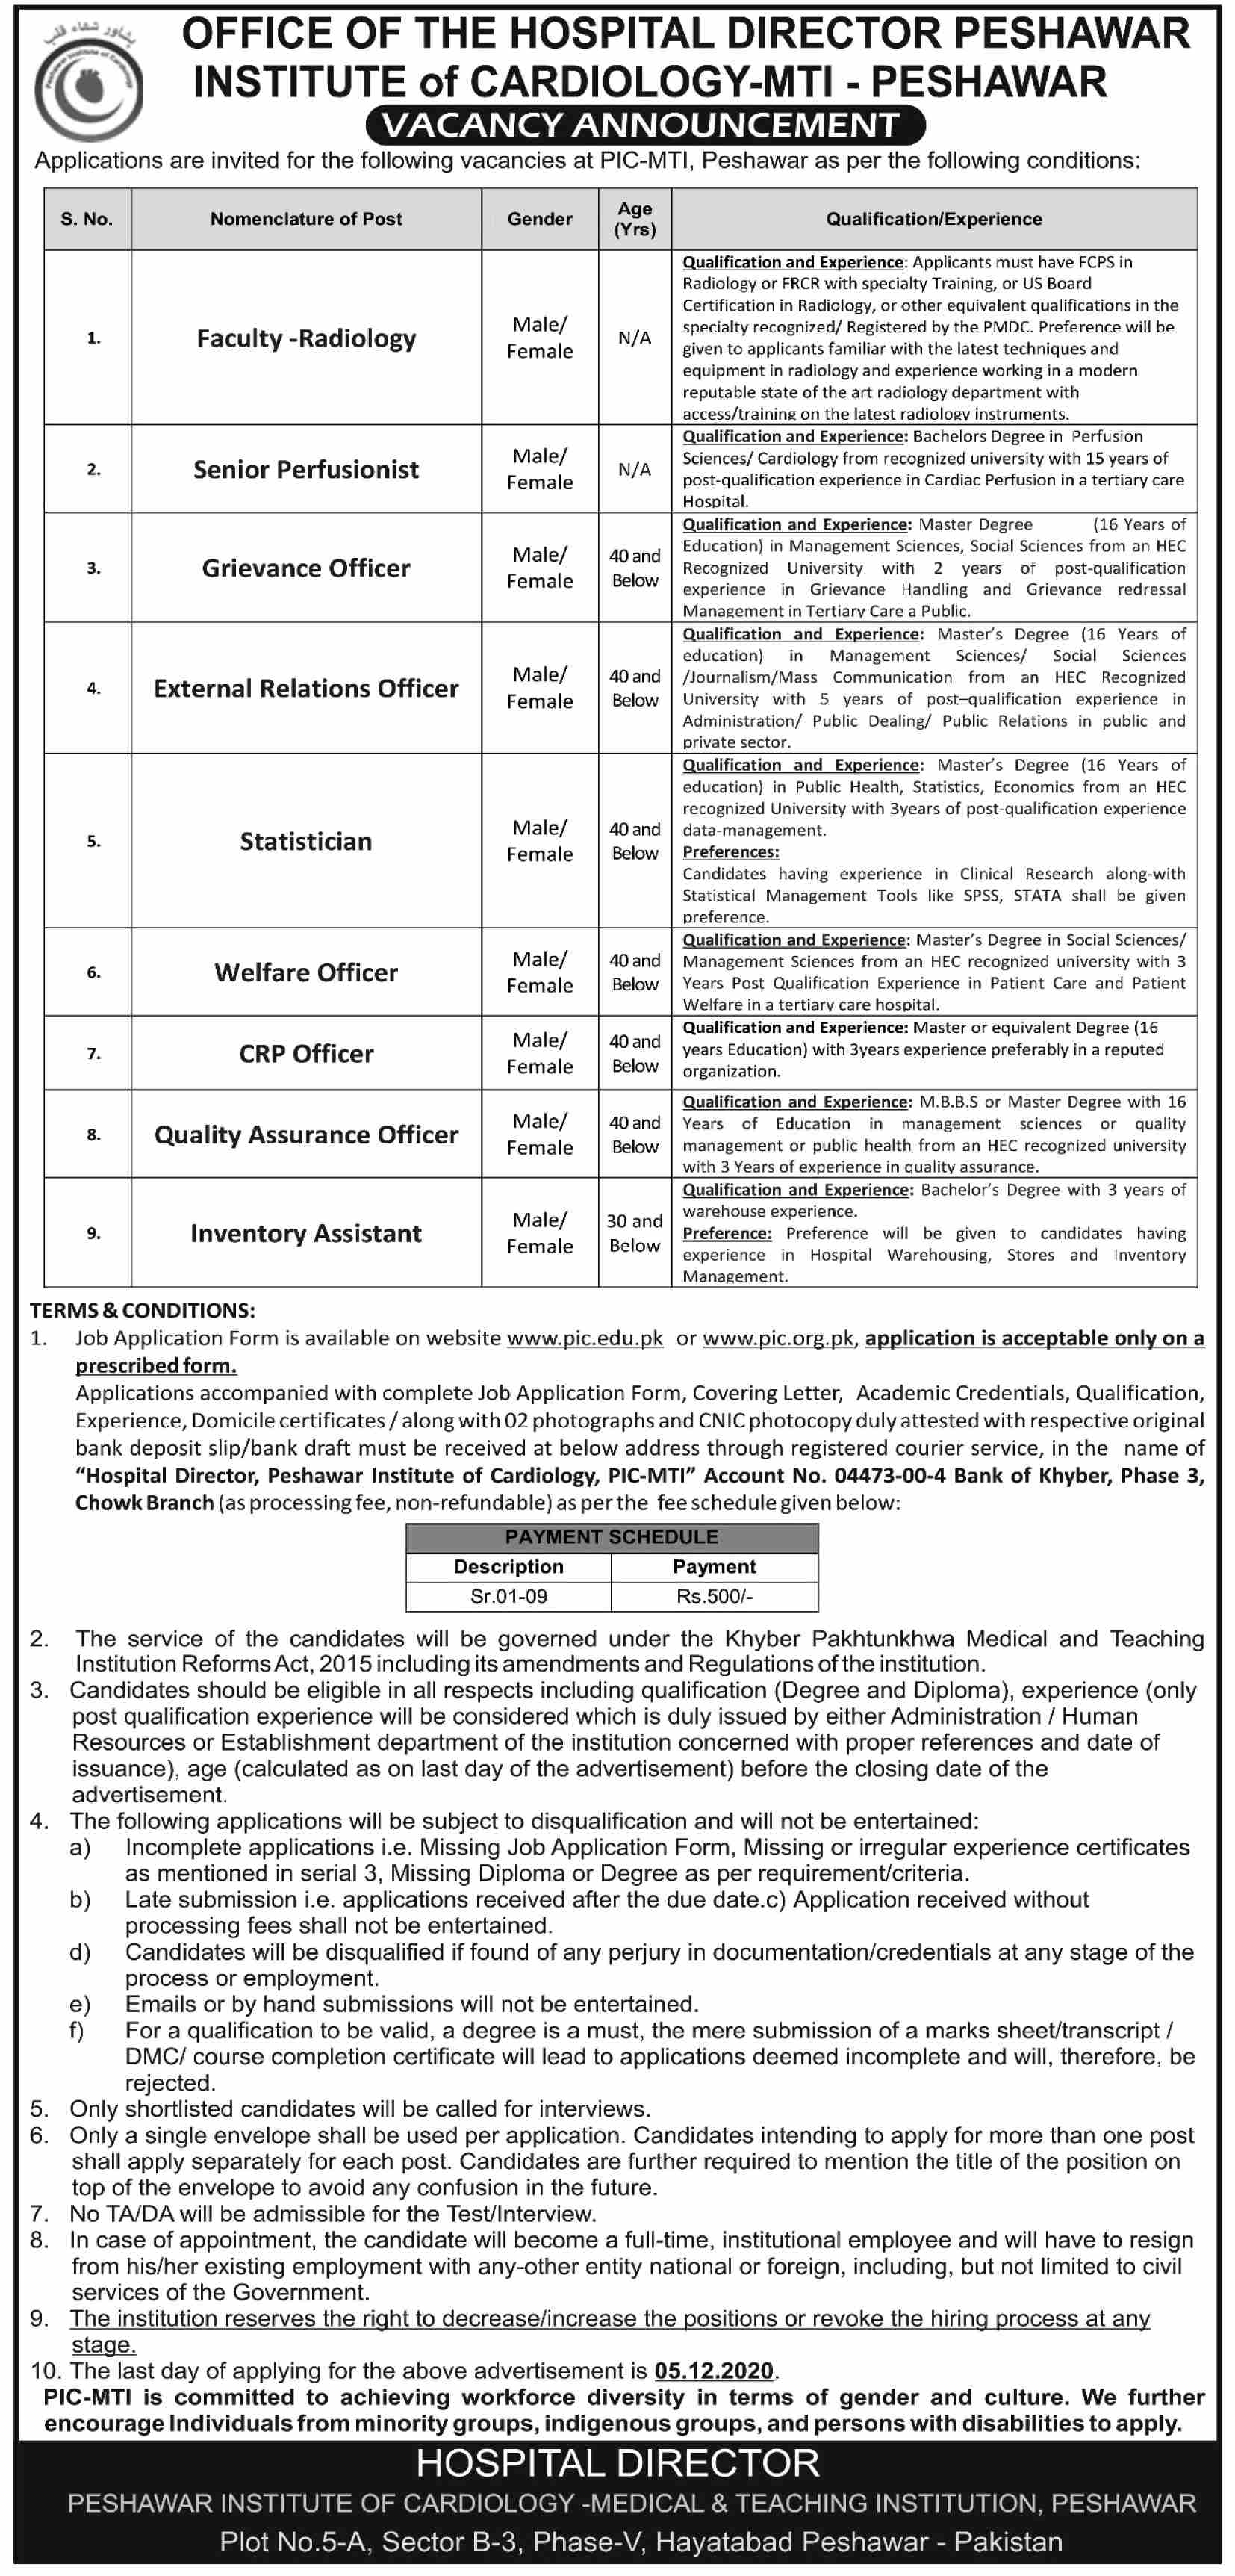 Peshawar Institute Of Cardiology jobs newspaper ad for Inventory Assistant in Peshawar